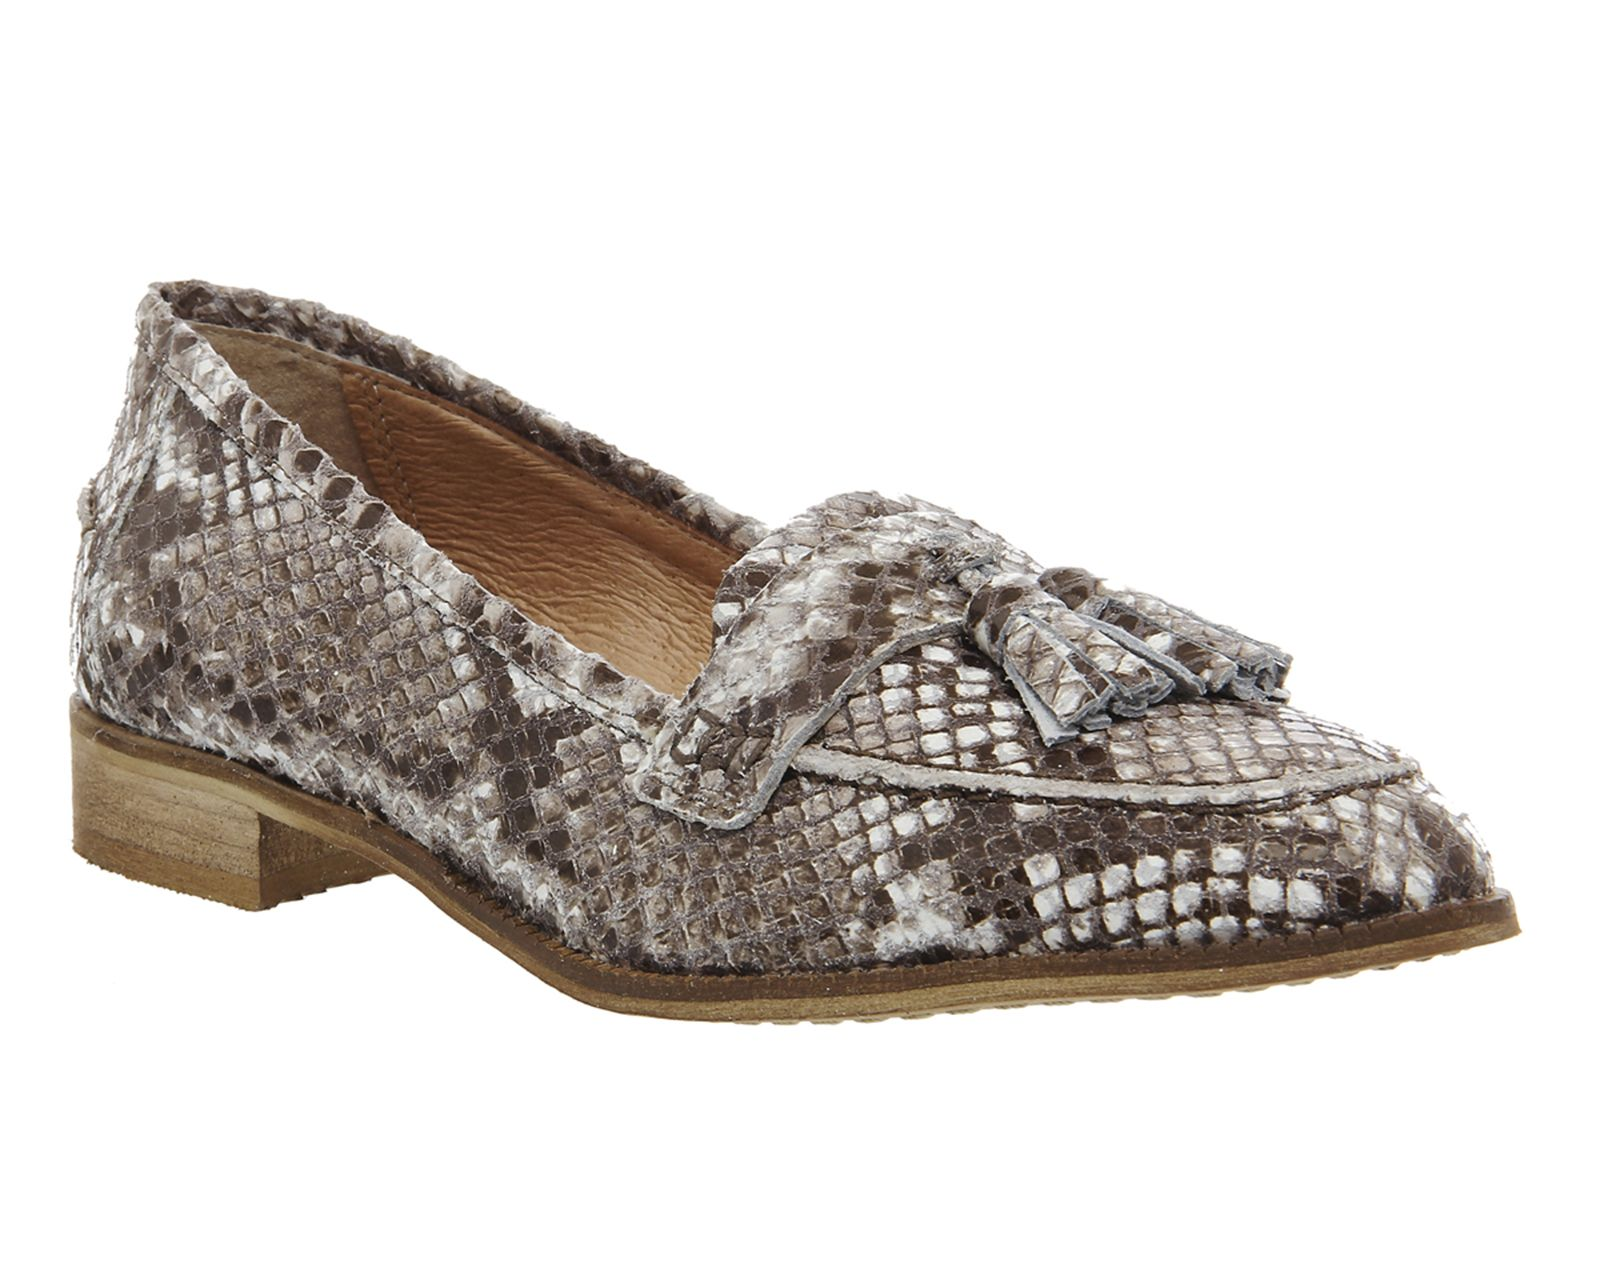 Office Lailah Tassel Loafers Natural Snake Leather - Flats